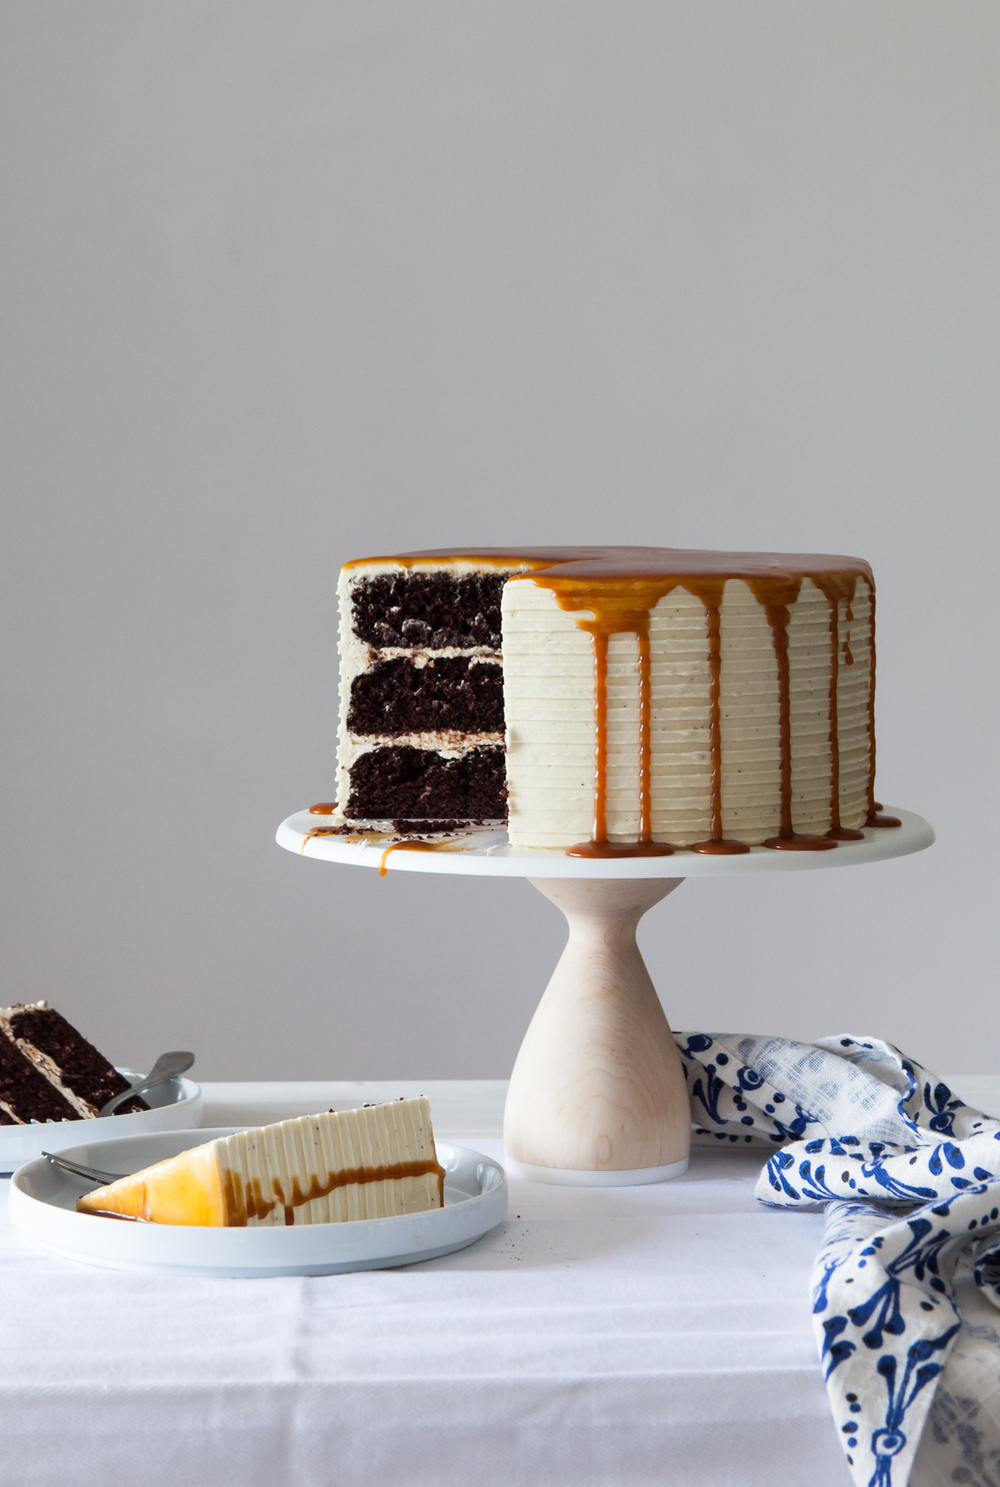 London Fog Cake with classic chocolate cake, earl grey buttercream, and salted caramel sauce.